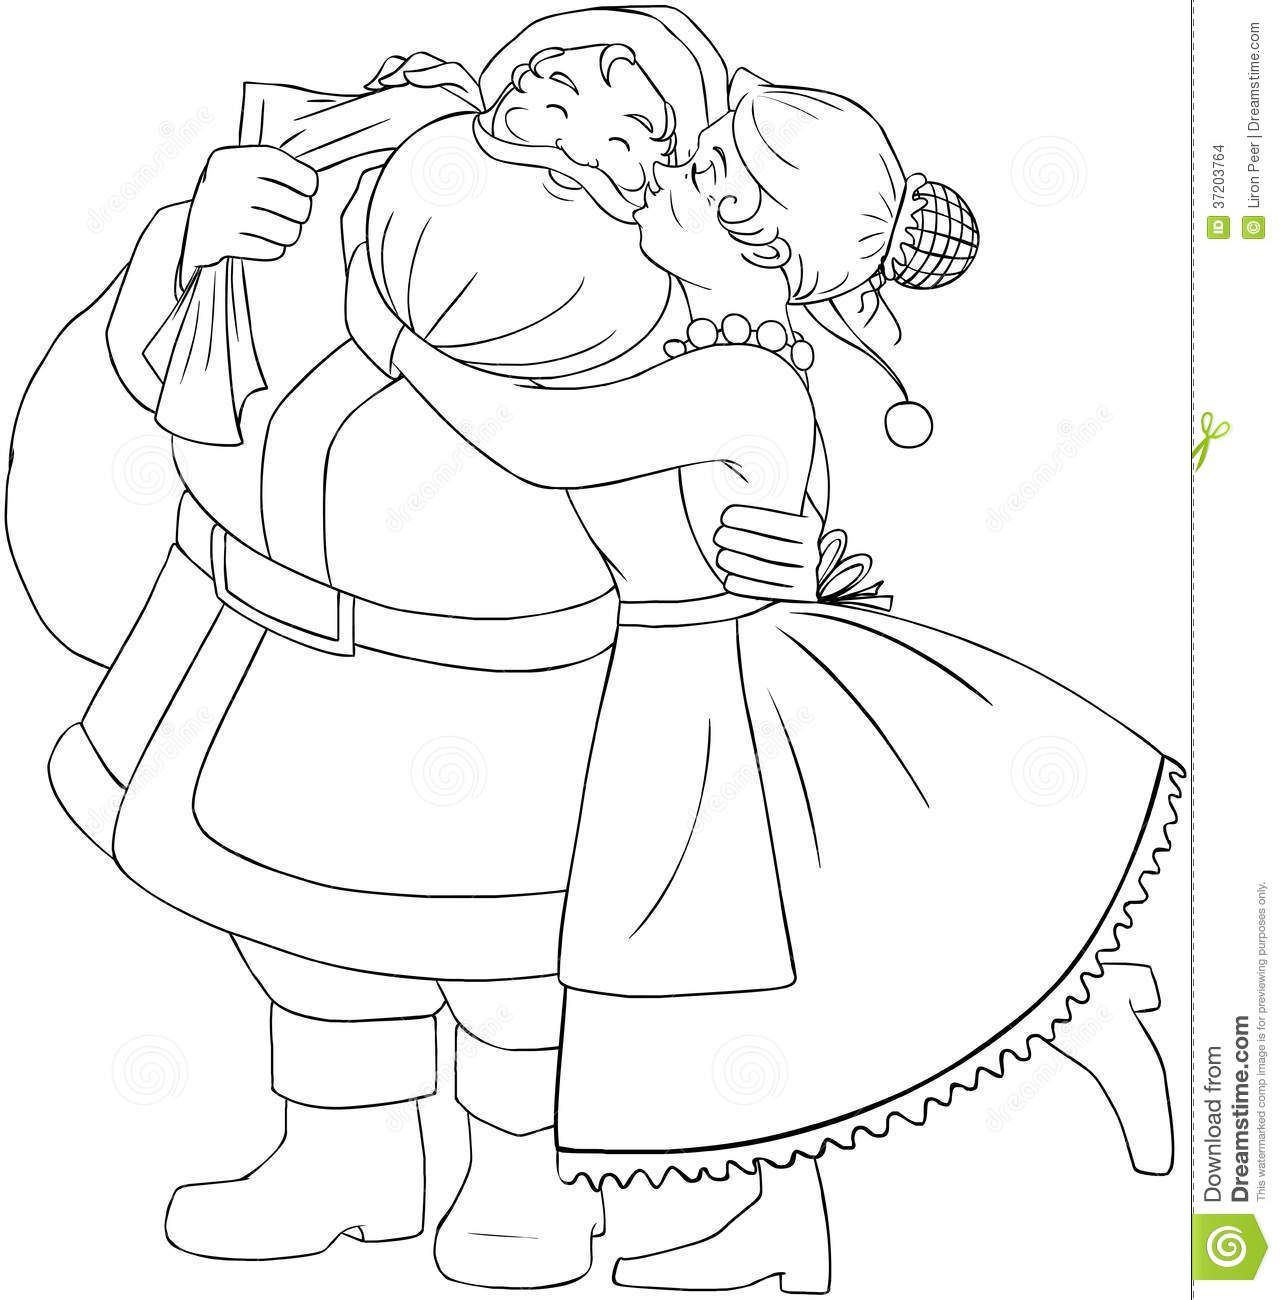 Santa Claus Coloring Pages Mrs. Claus Christmas Coloring